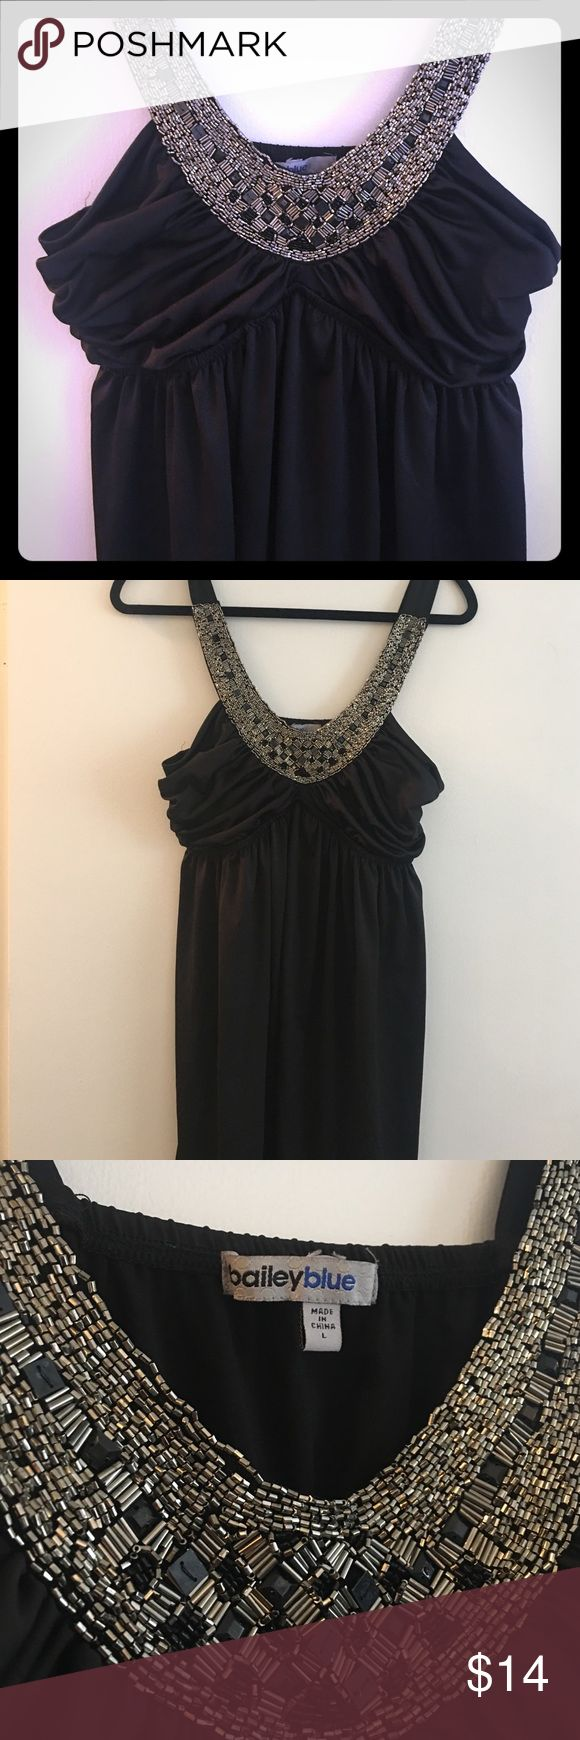 Intricately Beaded V Neck Black Dress Beautifully beaded neckline knee length dress with cinched waist. Bailey Blue Dresses